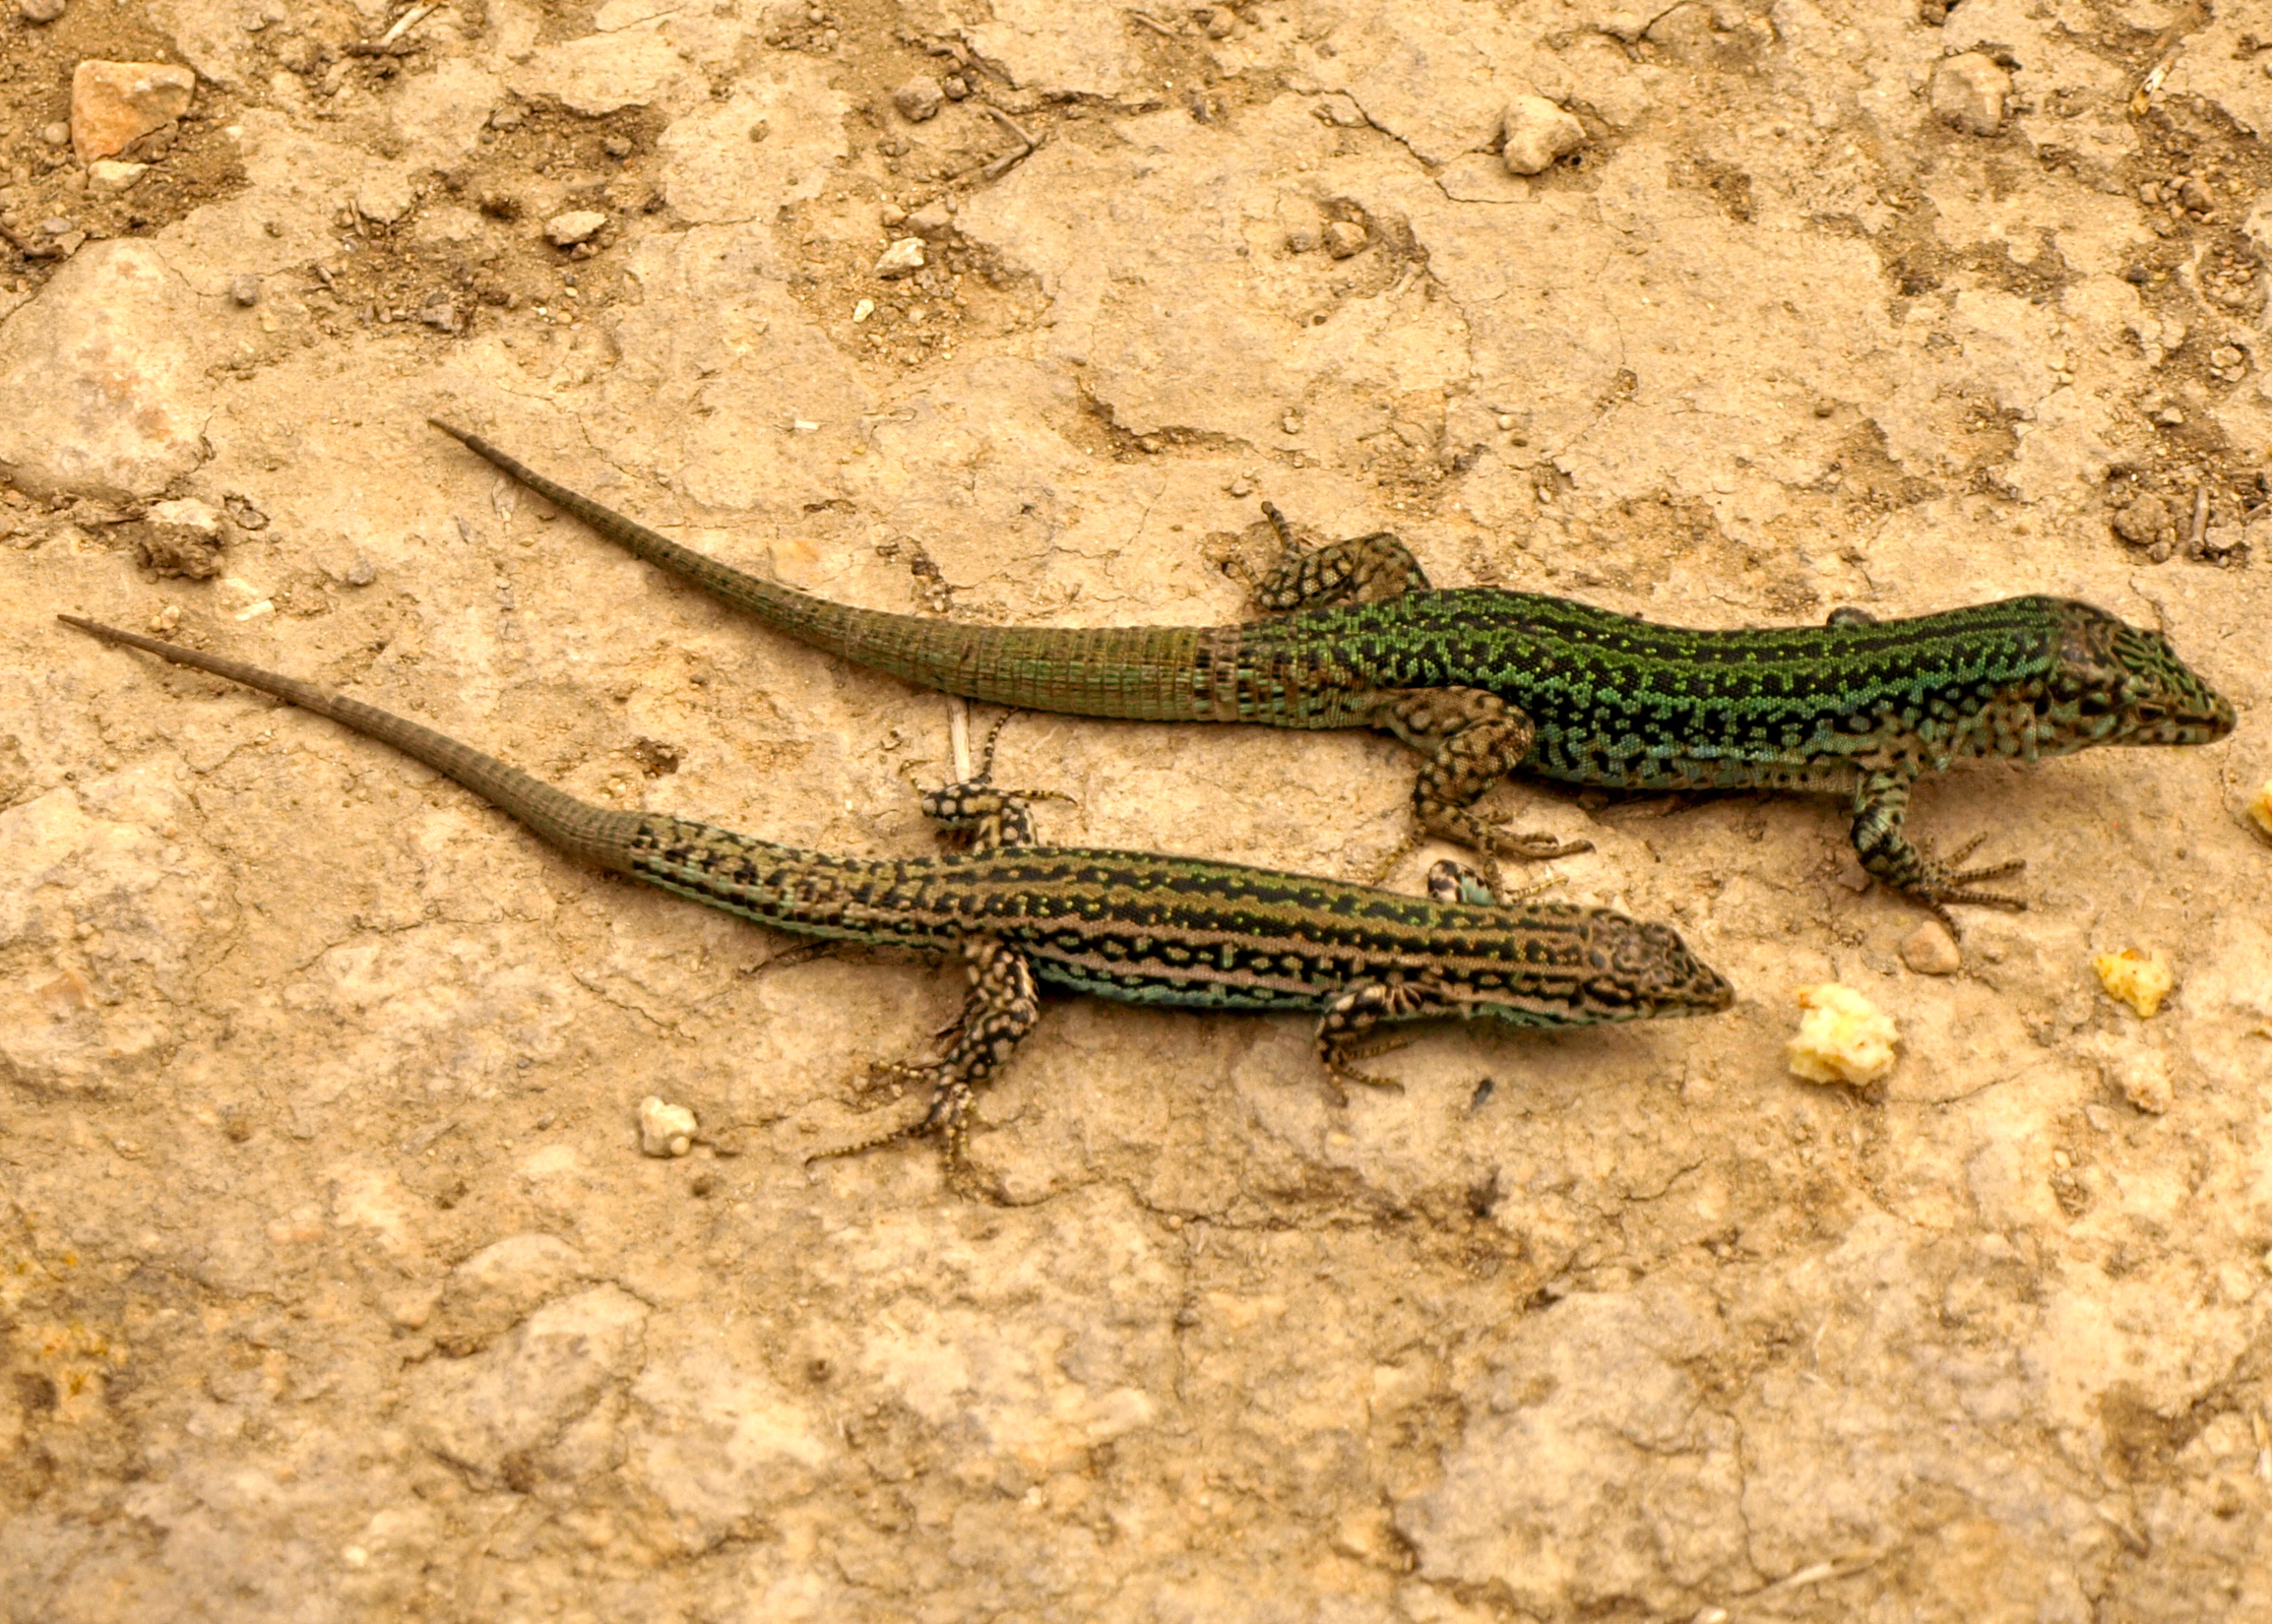 The Ibiza Wall Lizard the most famous of the islands creatures